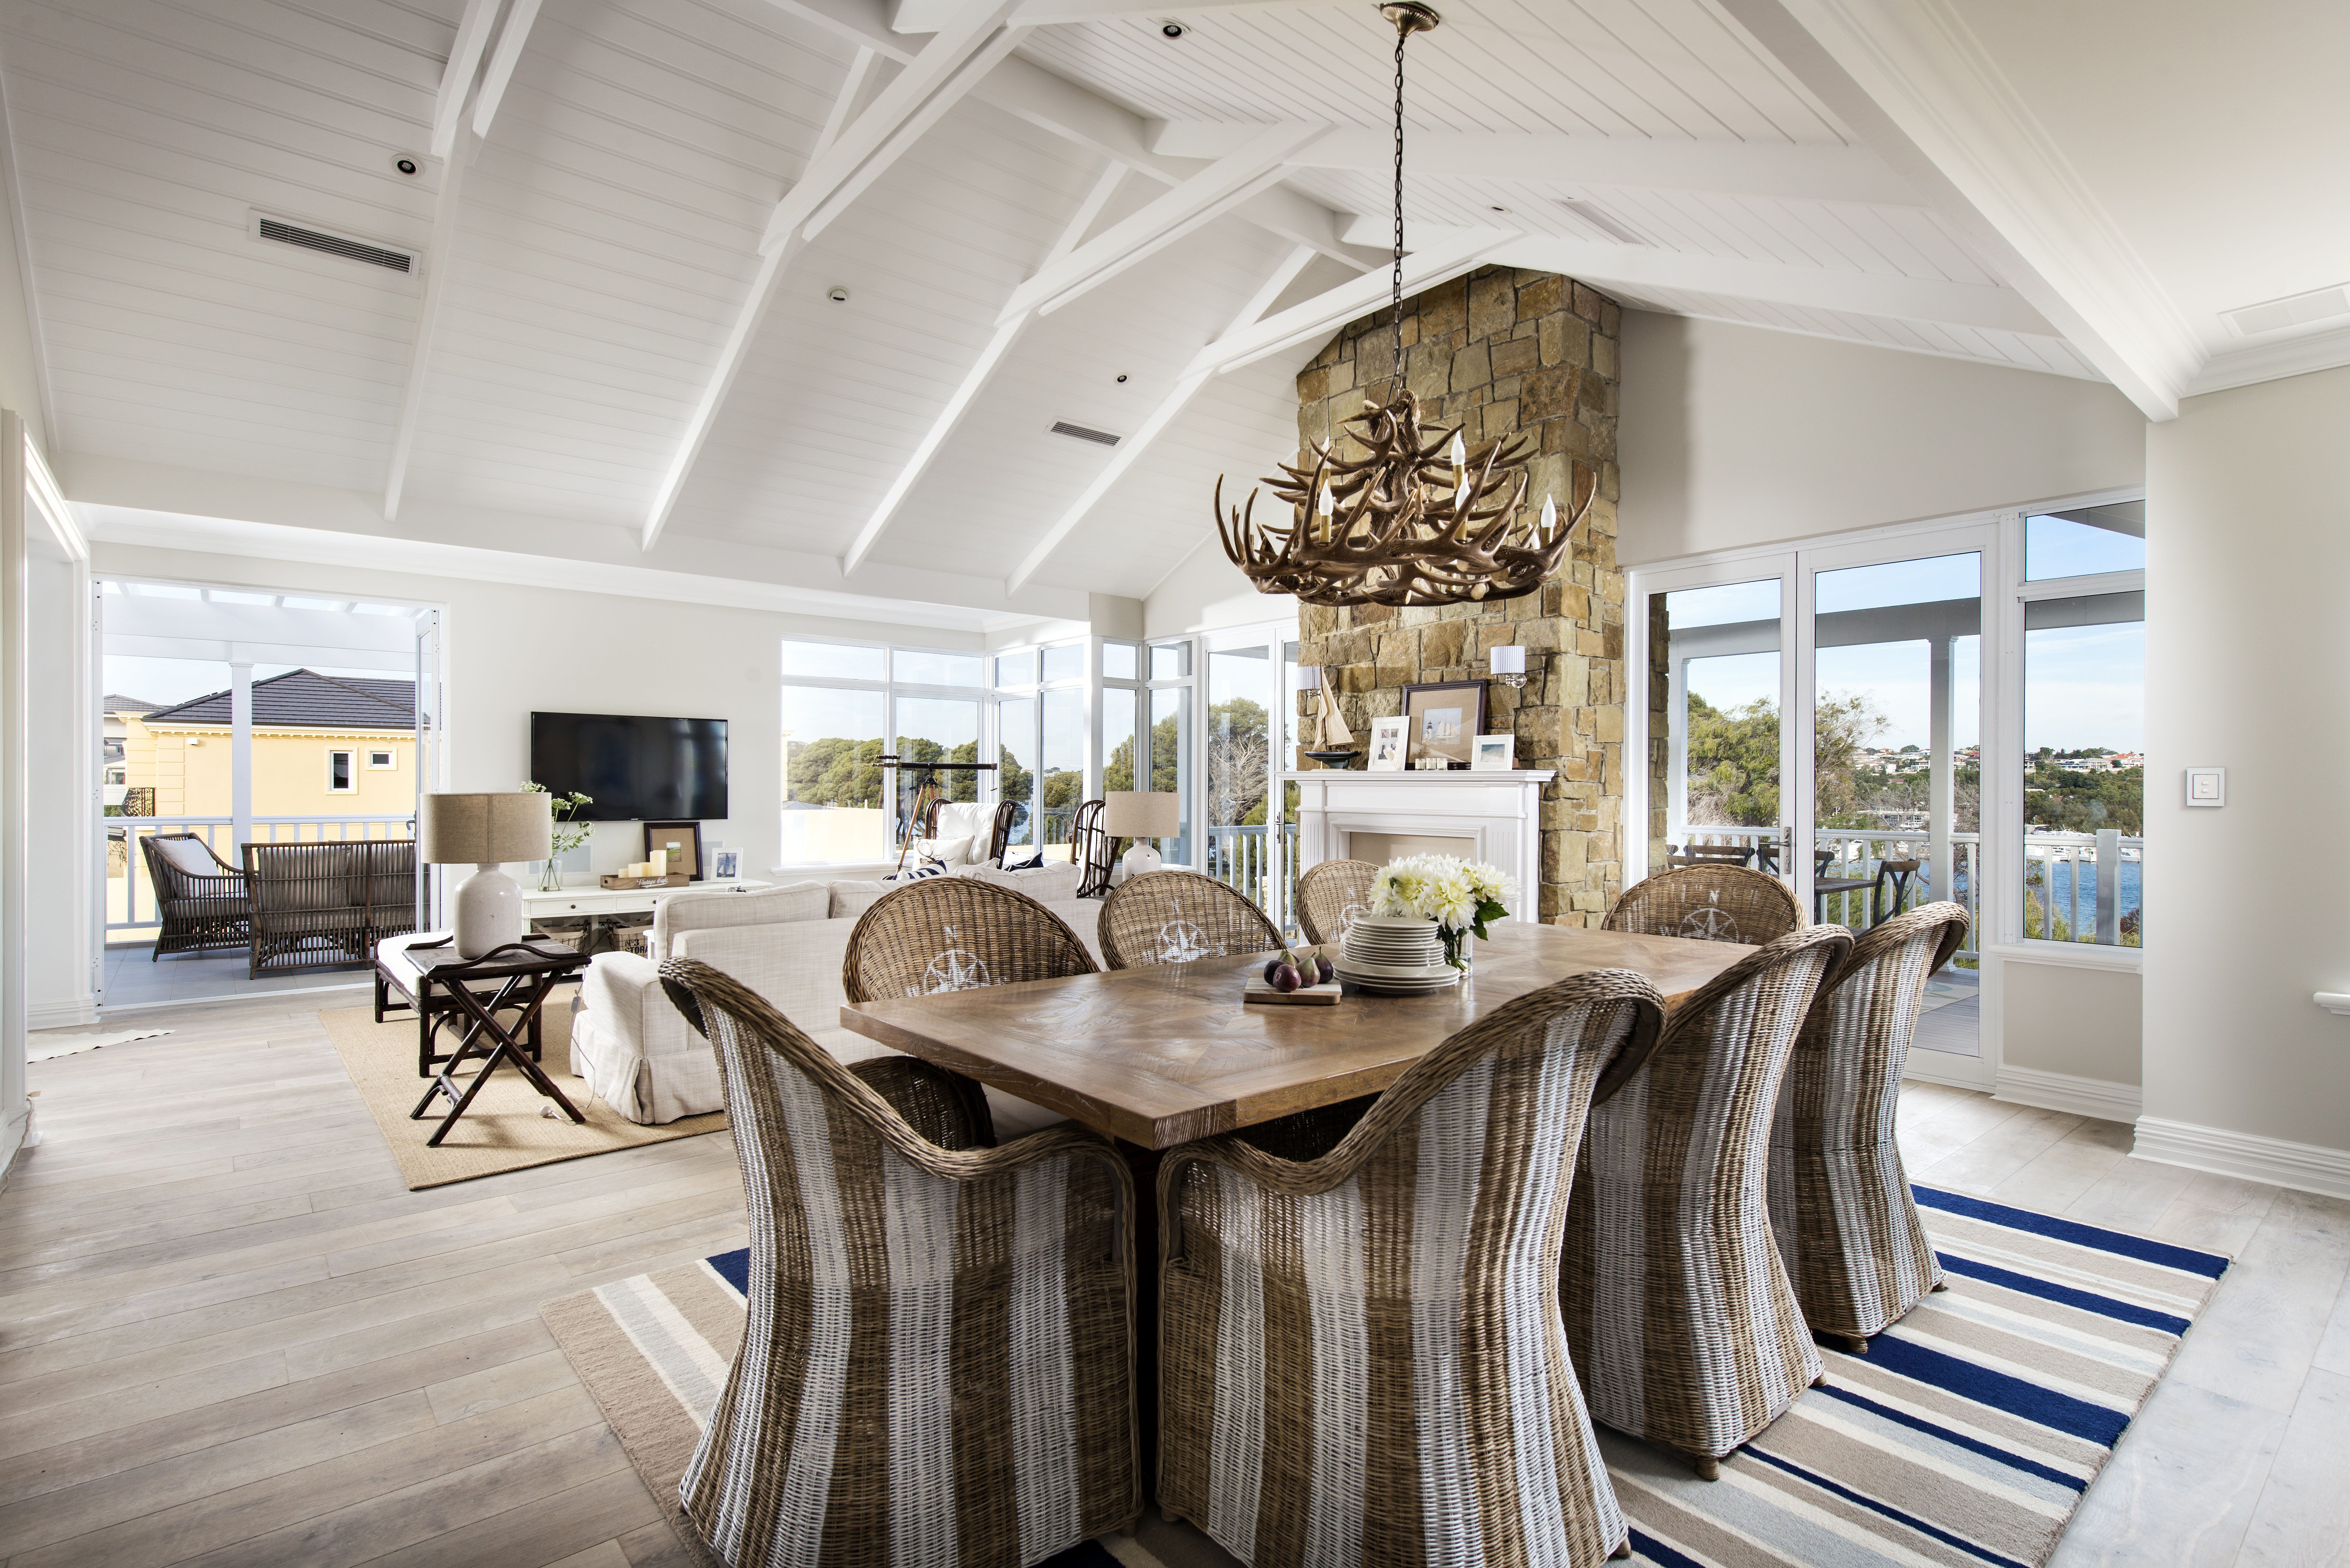 The dining room combines a natural wood table with striped wicker chairs. Each chair has a compass emblazoned on the back of the chair. Blue in the area rug differentiates the space further. An antler light fixture hangs above the dining table.